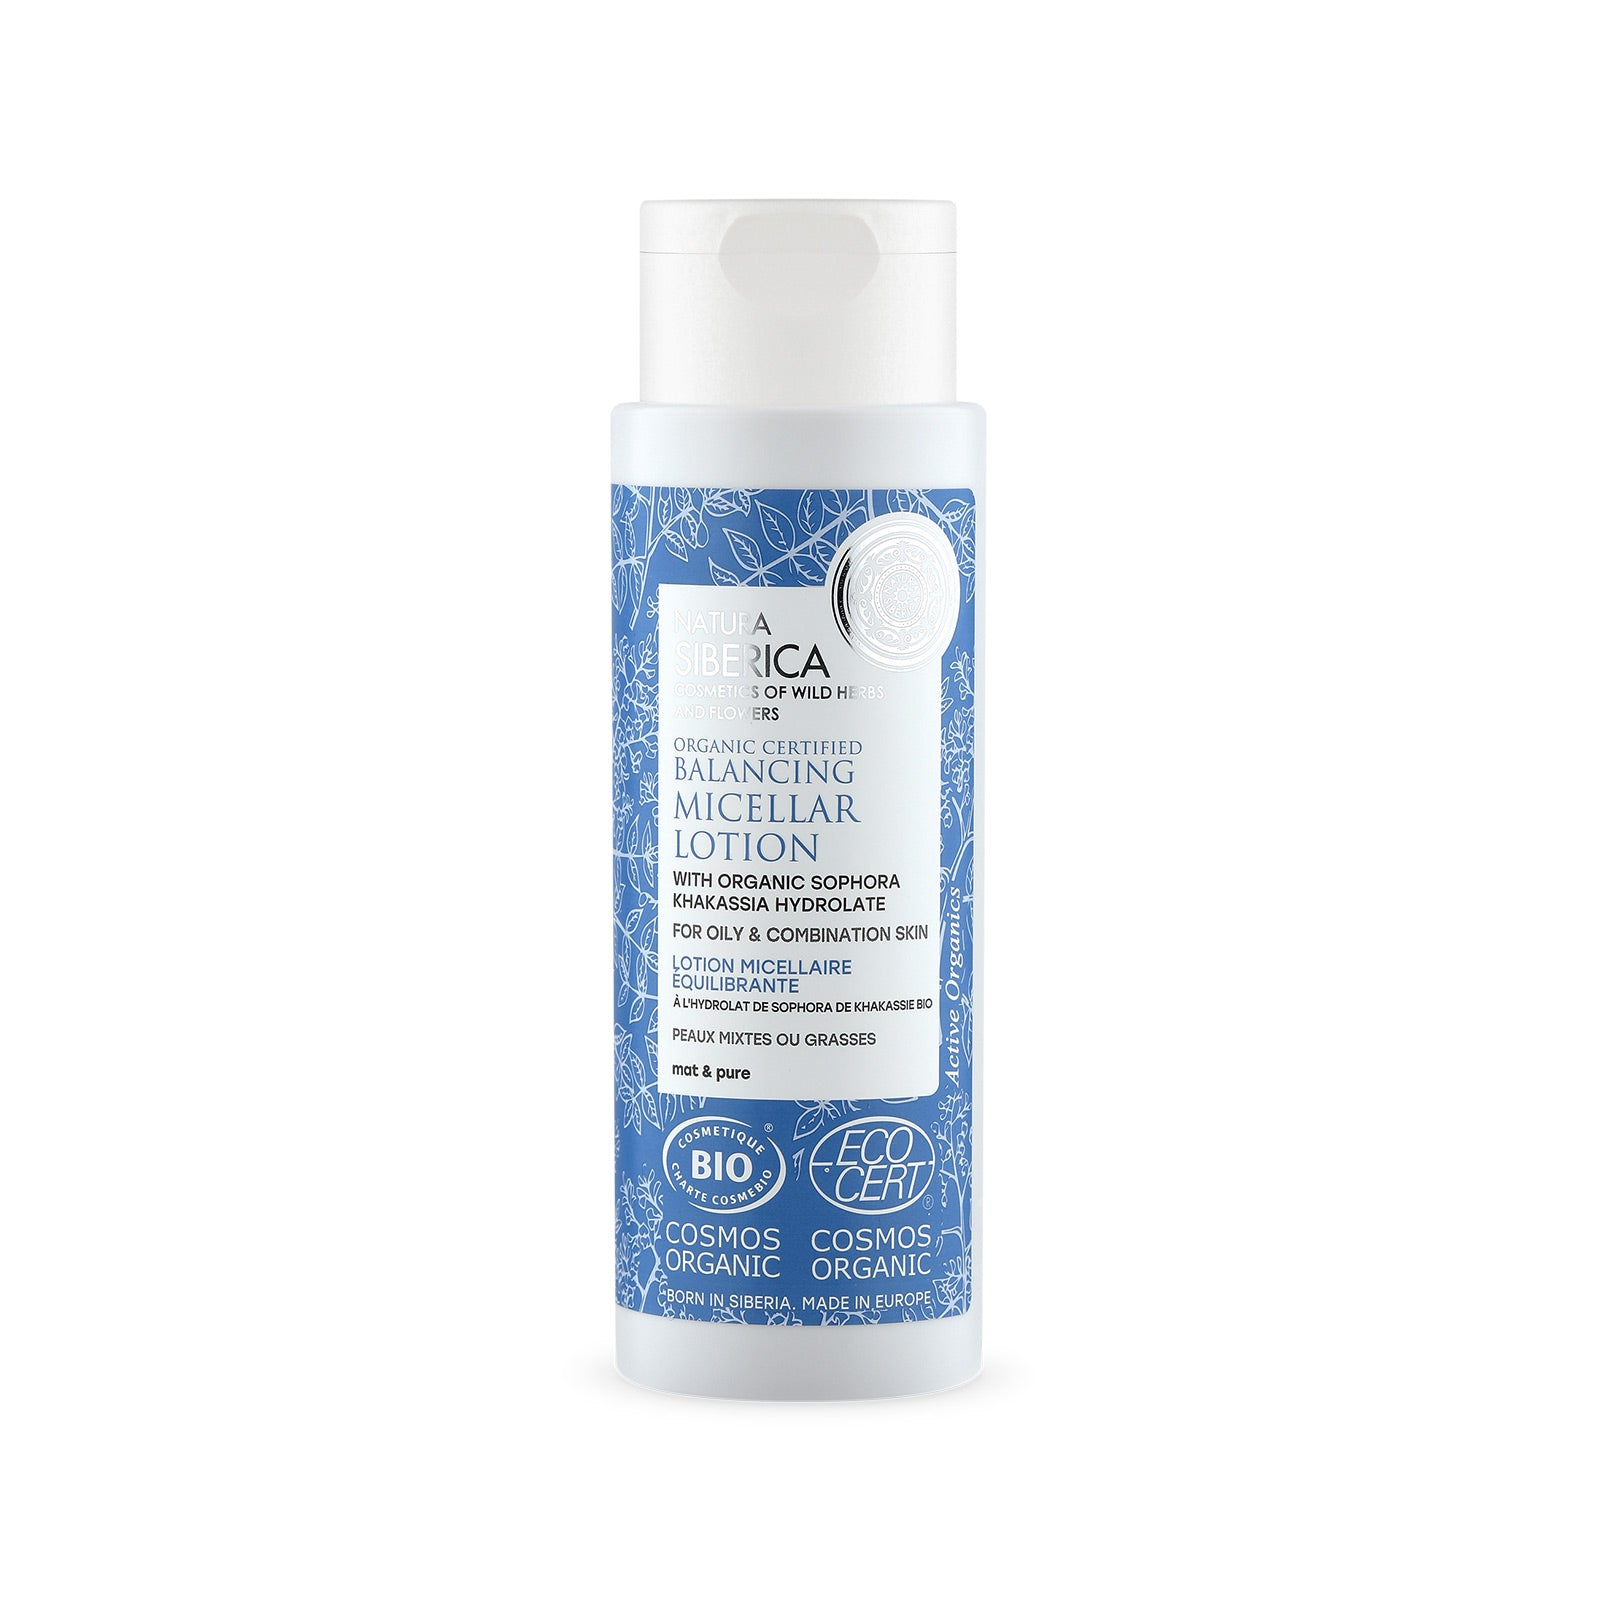 Balancing Micellar Lotion for oily & combination skin, 150 ml